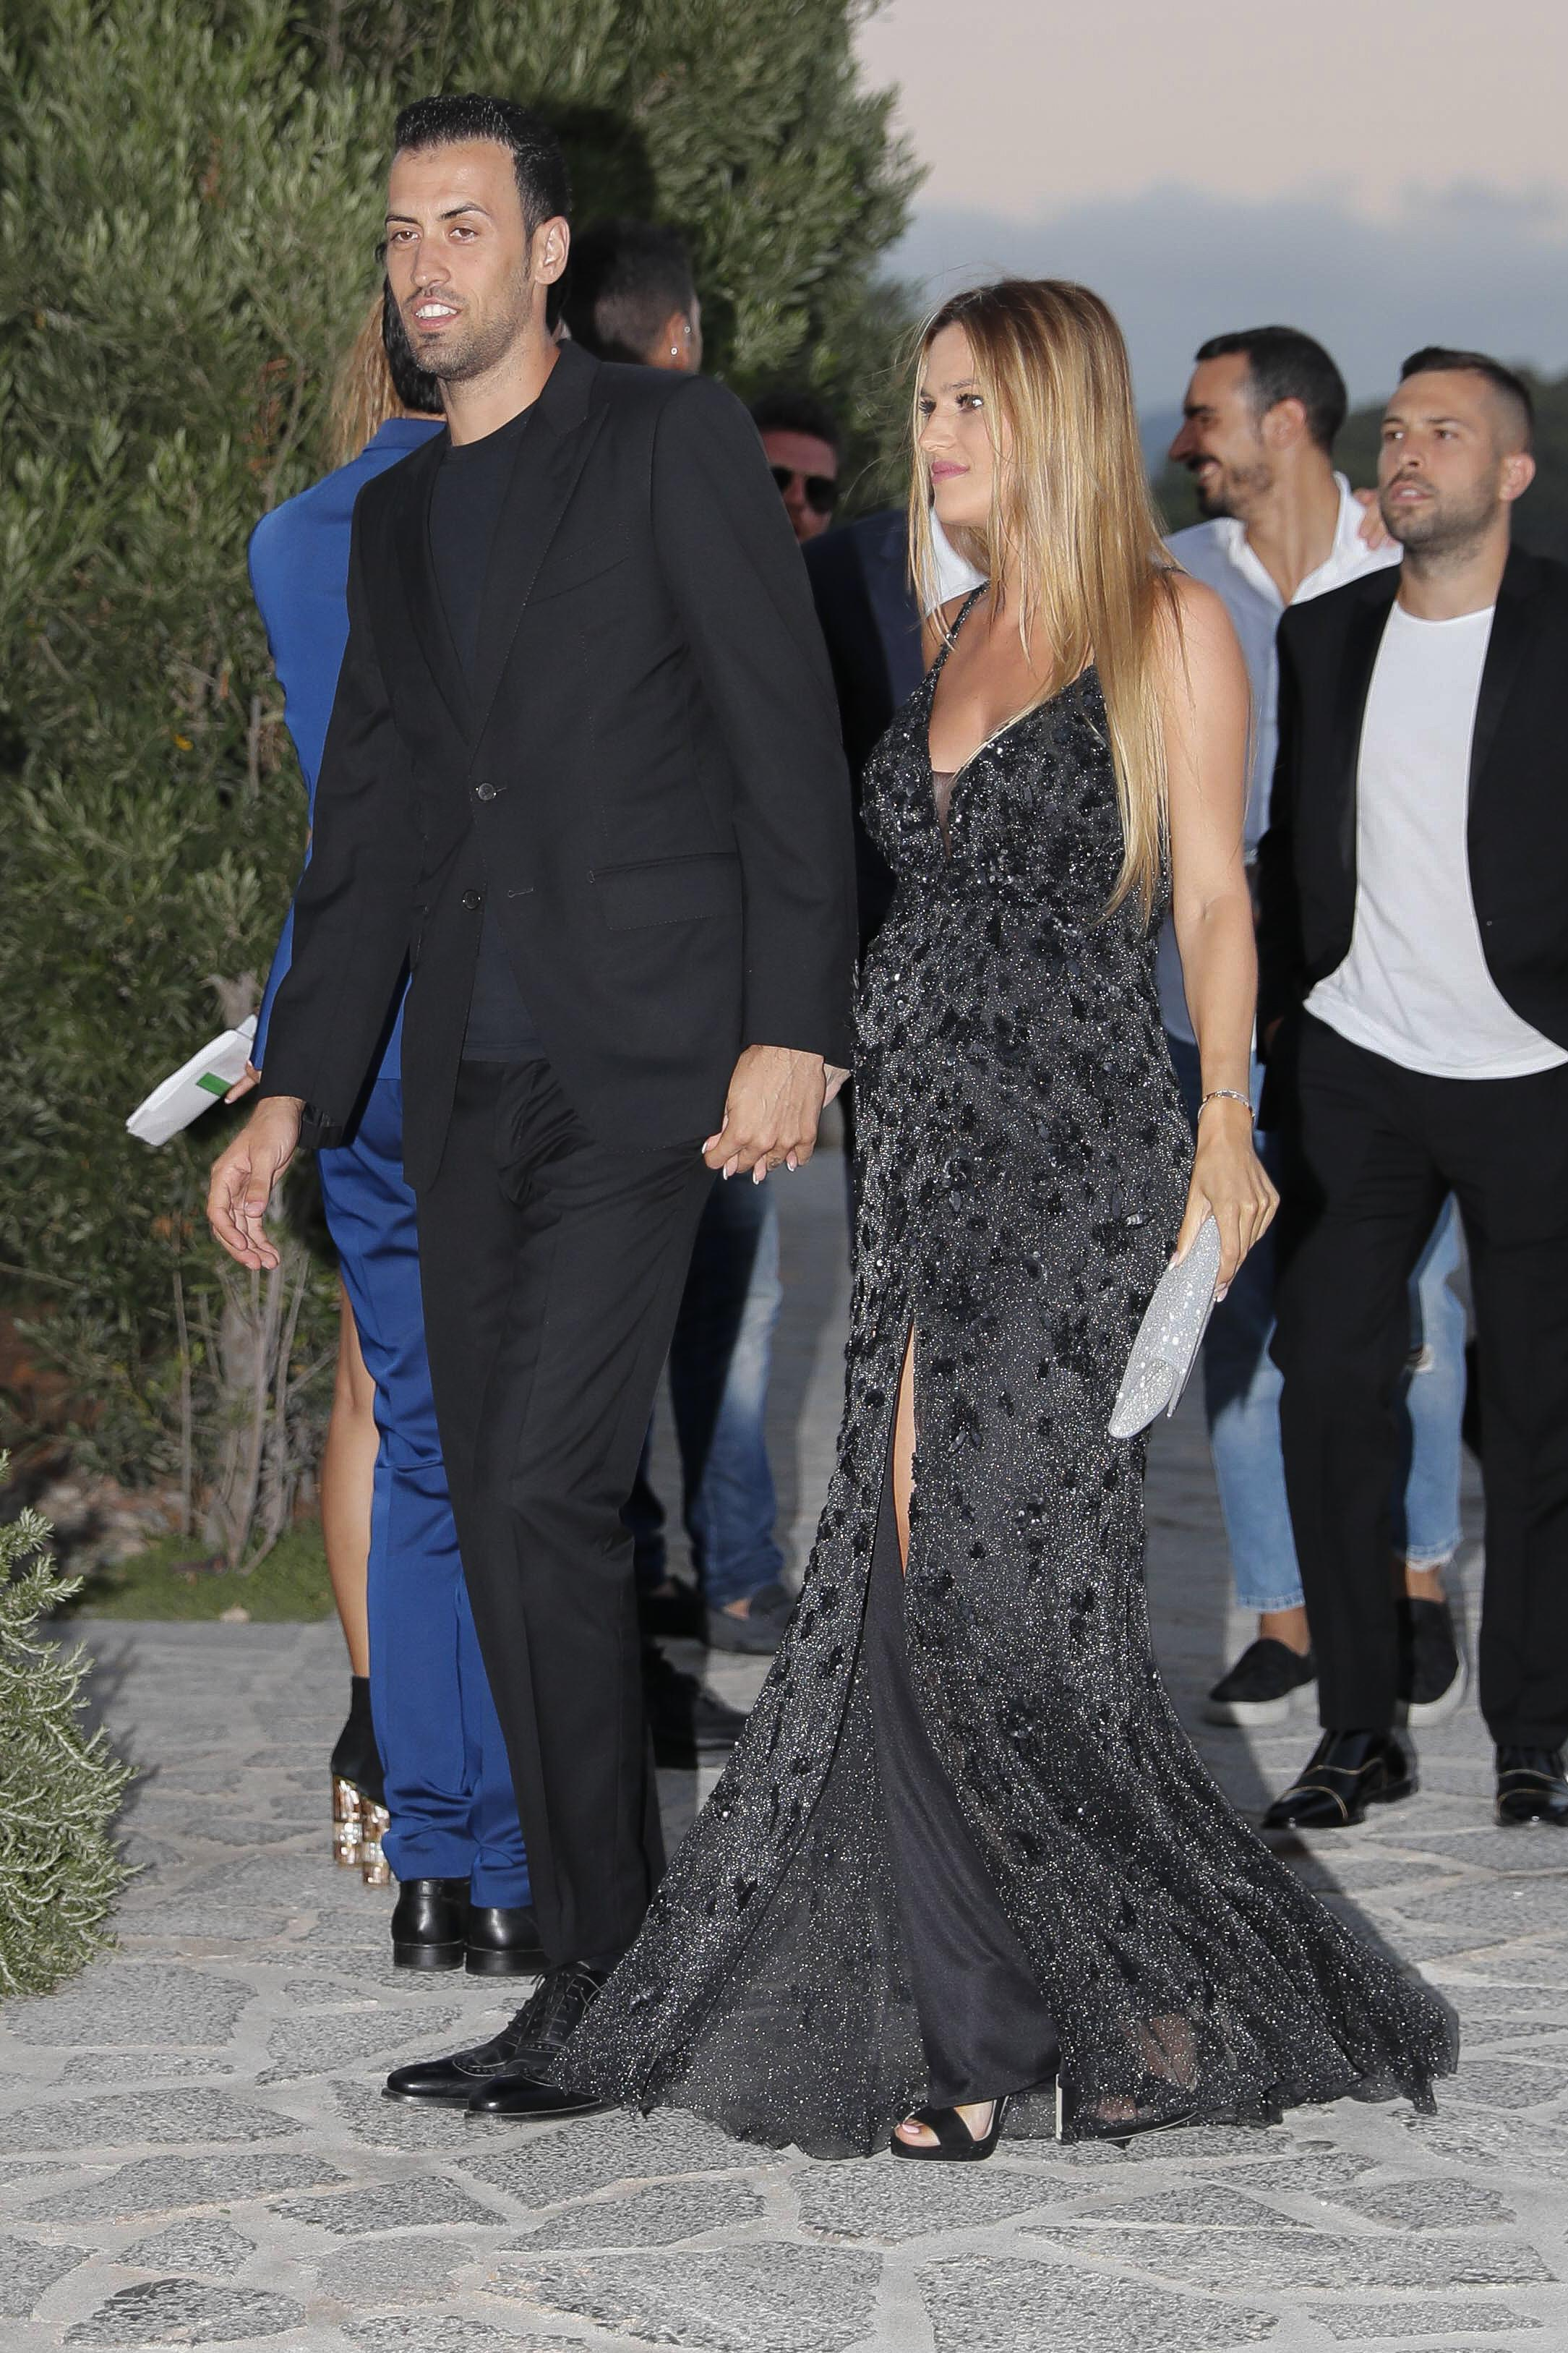 Sergio Busquets and wife Elena Galera look in happy spirits as they get ready to party with Cesc Fabregas